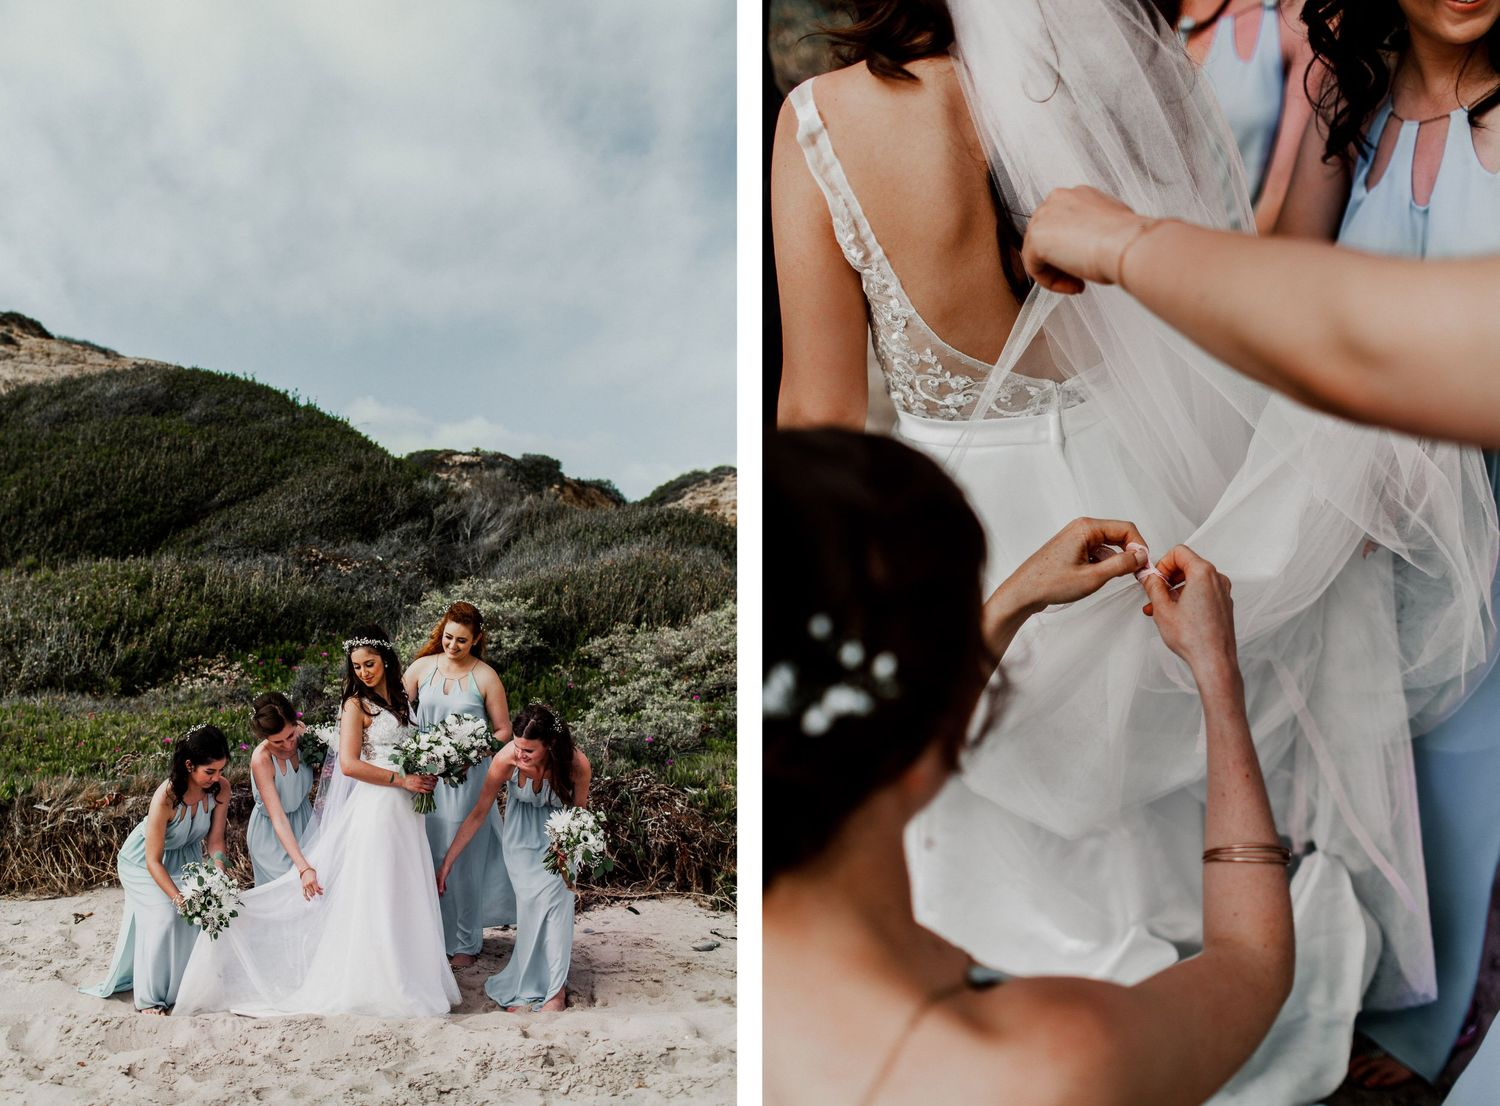 bridesmaids in blue dress helping bustle wedding dress on beach